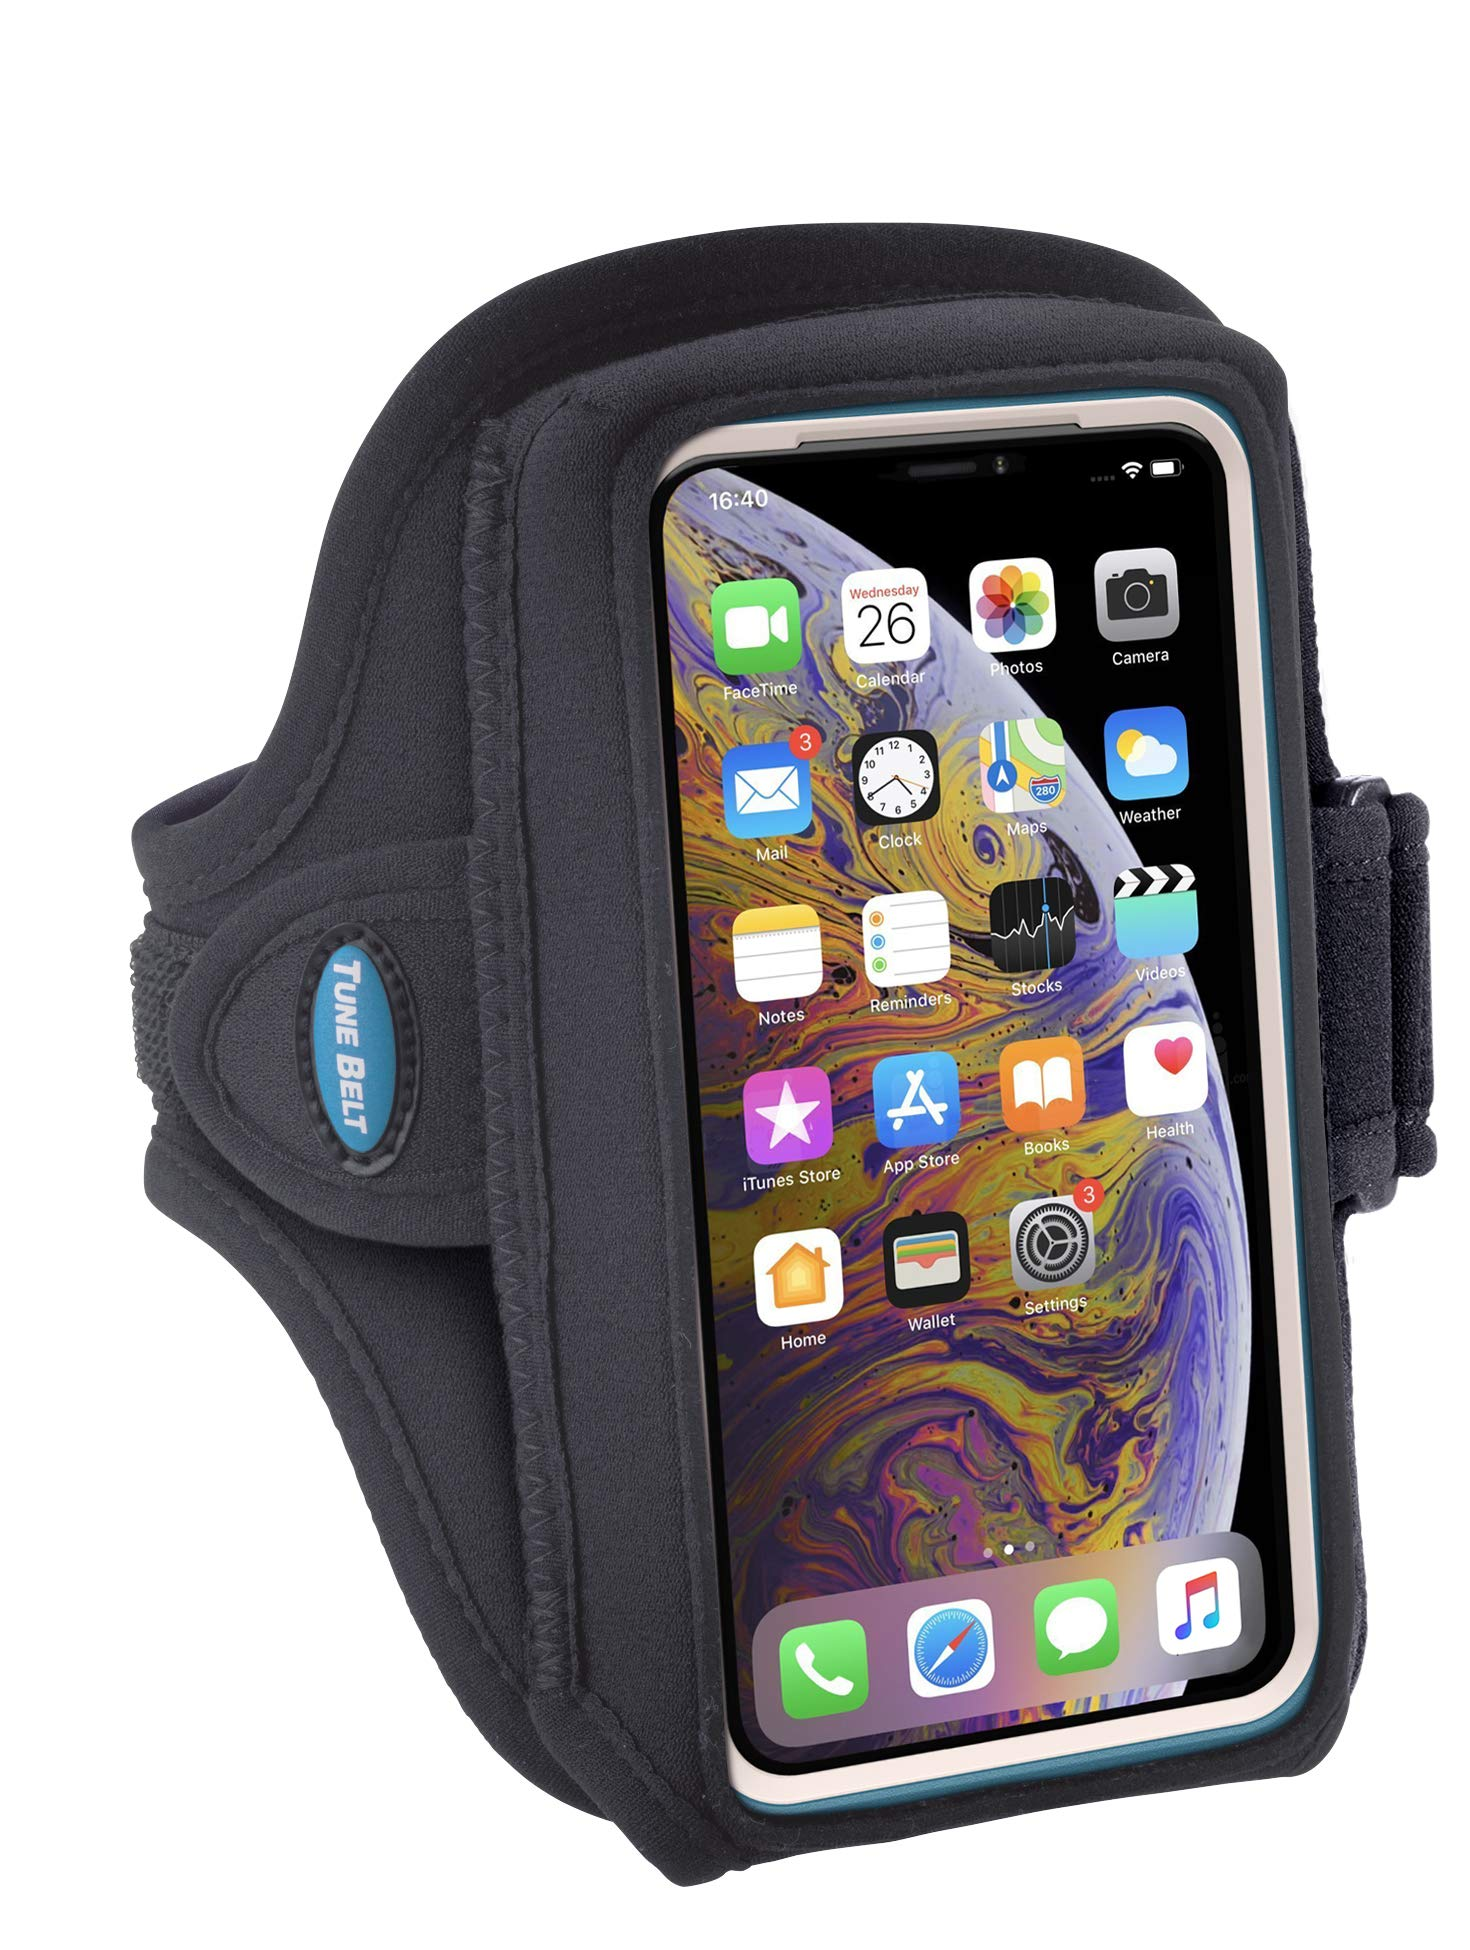 Tune Belt Armband for iPhone X Xs 8 7 6s 6 with OtterBox Defender / LifeProof Case - Fits Galaxy S8 S9 S10 with Large Case - For Running & Working Out - Sweat-Resistant by Tune Belt